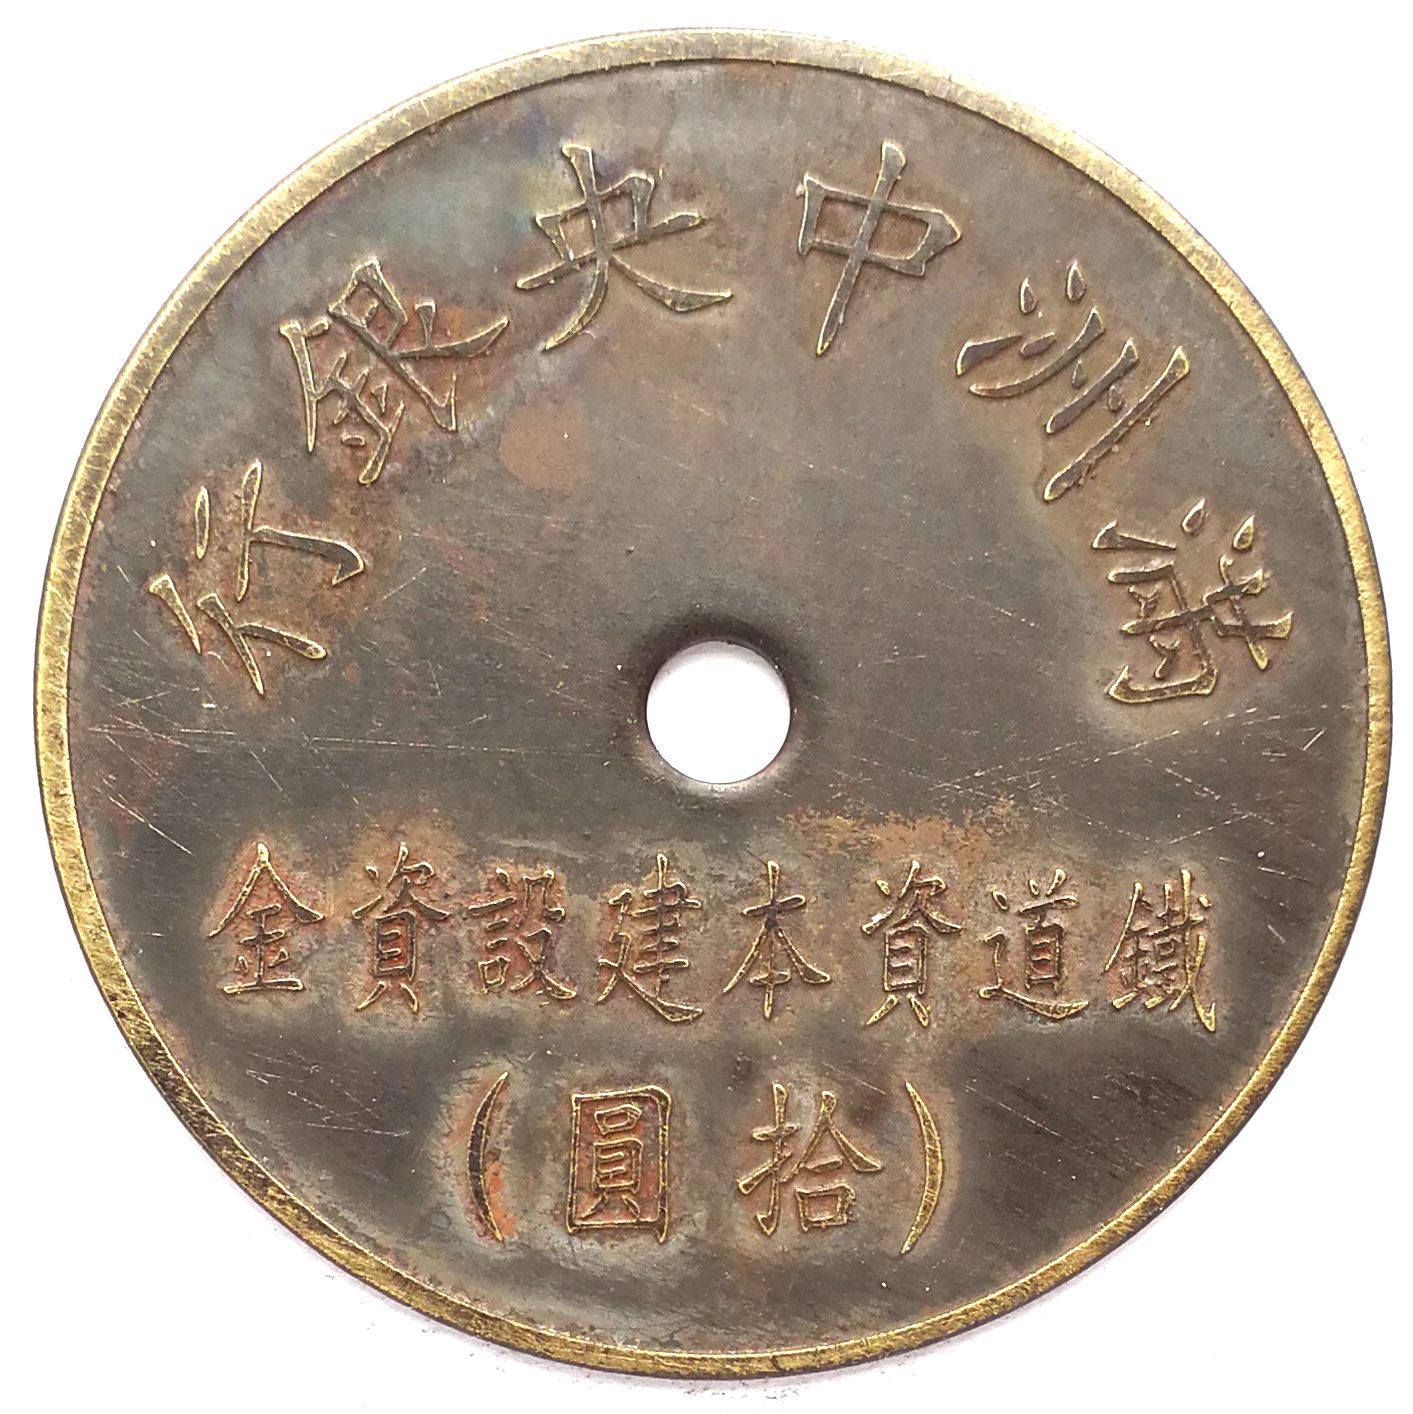 Railway Line Construction Fund, Manchukuo Token, 10 Yen 1944